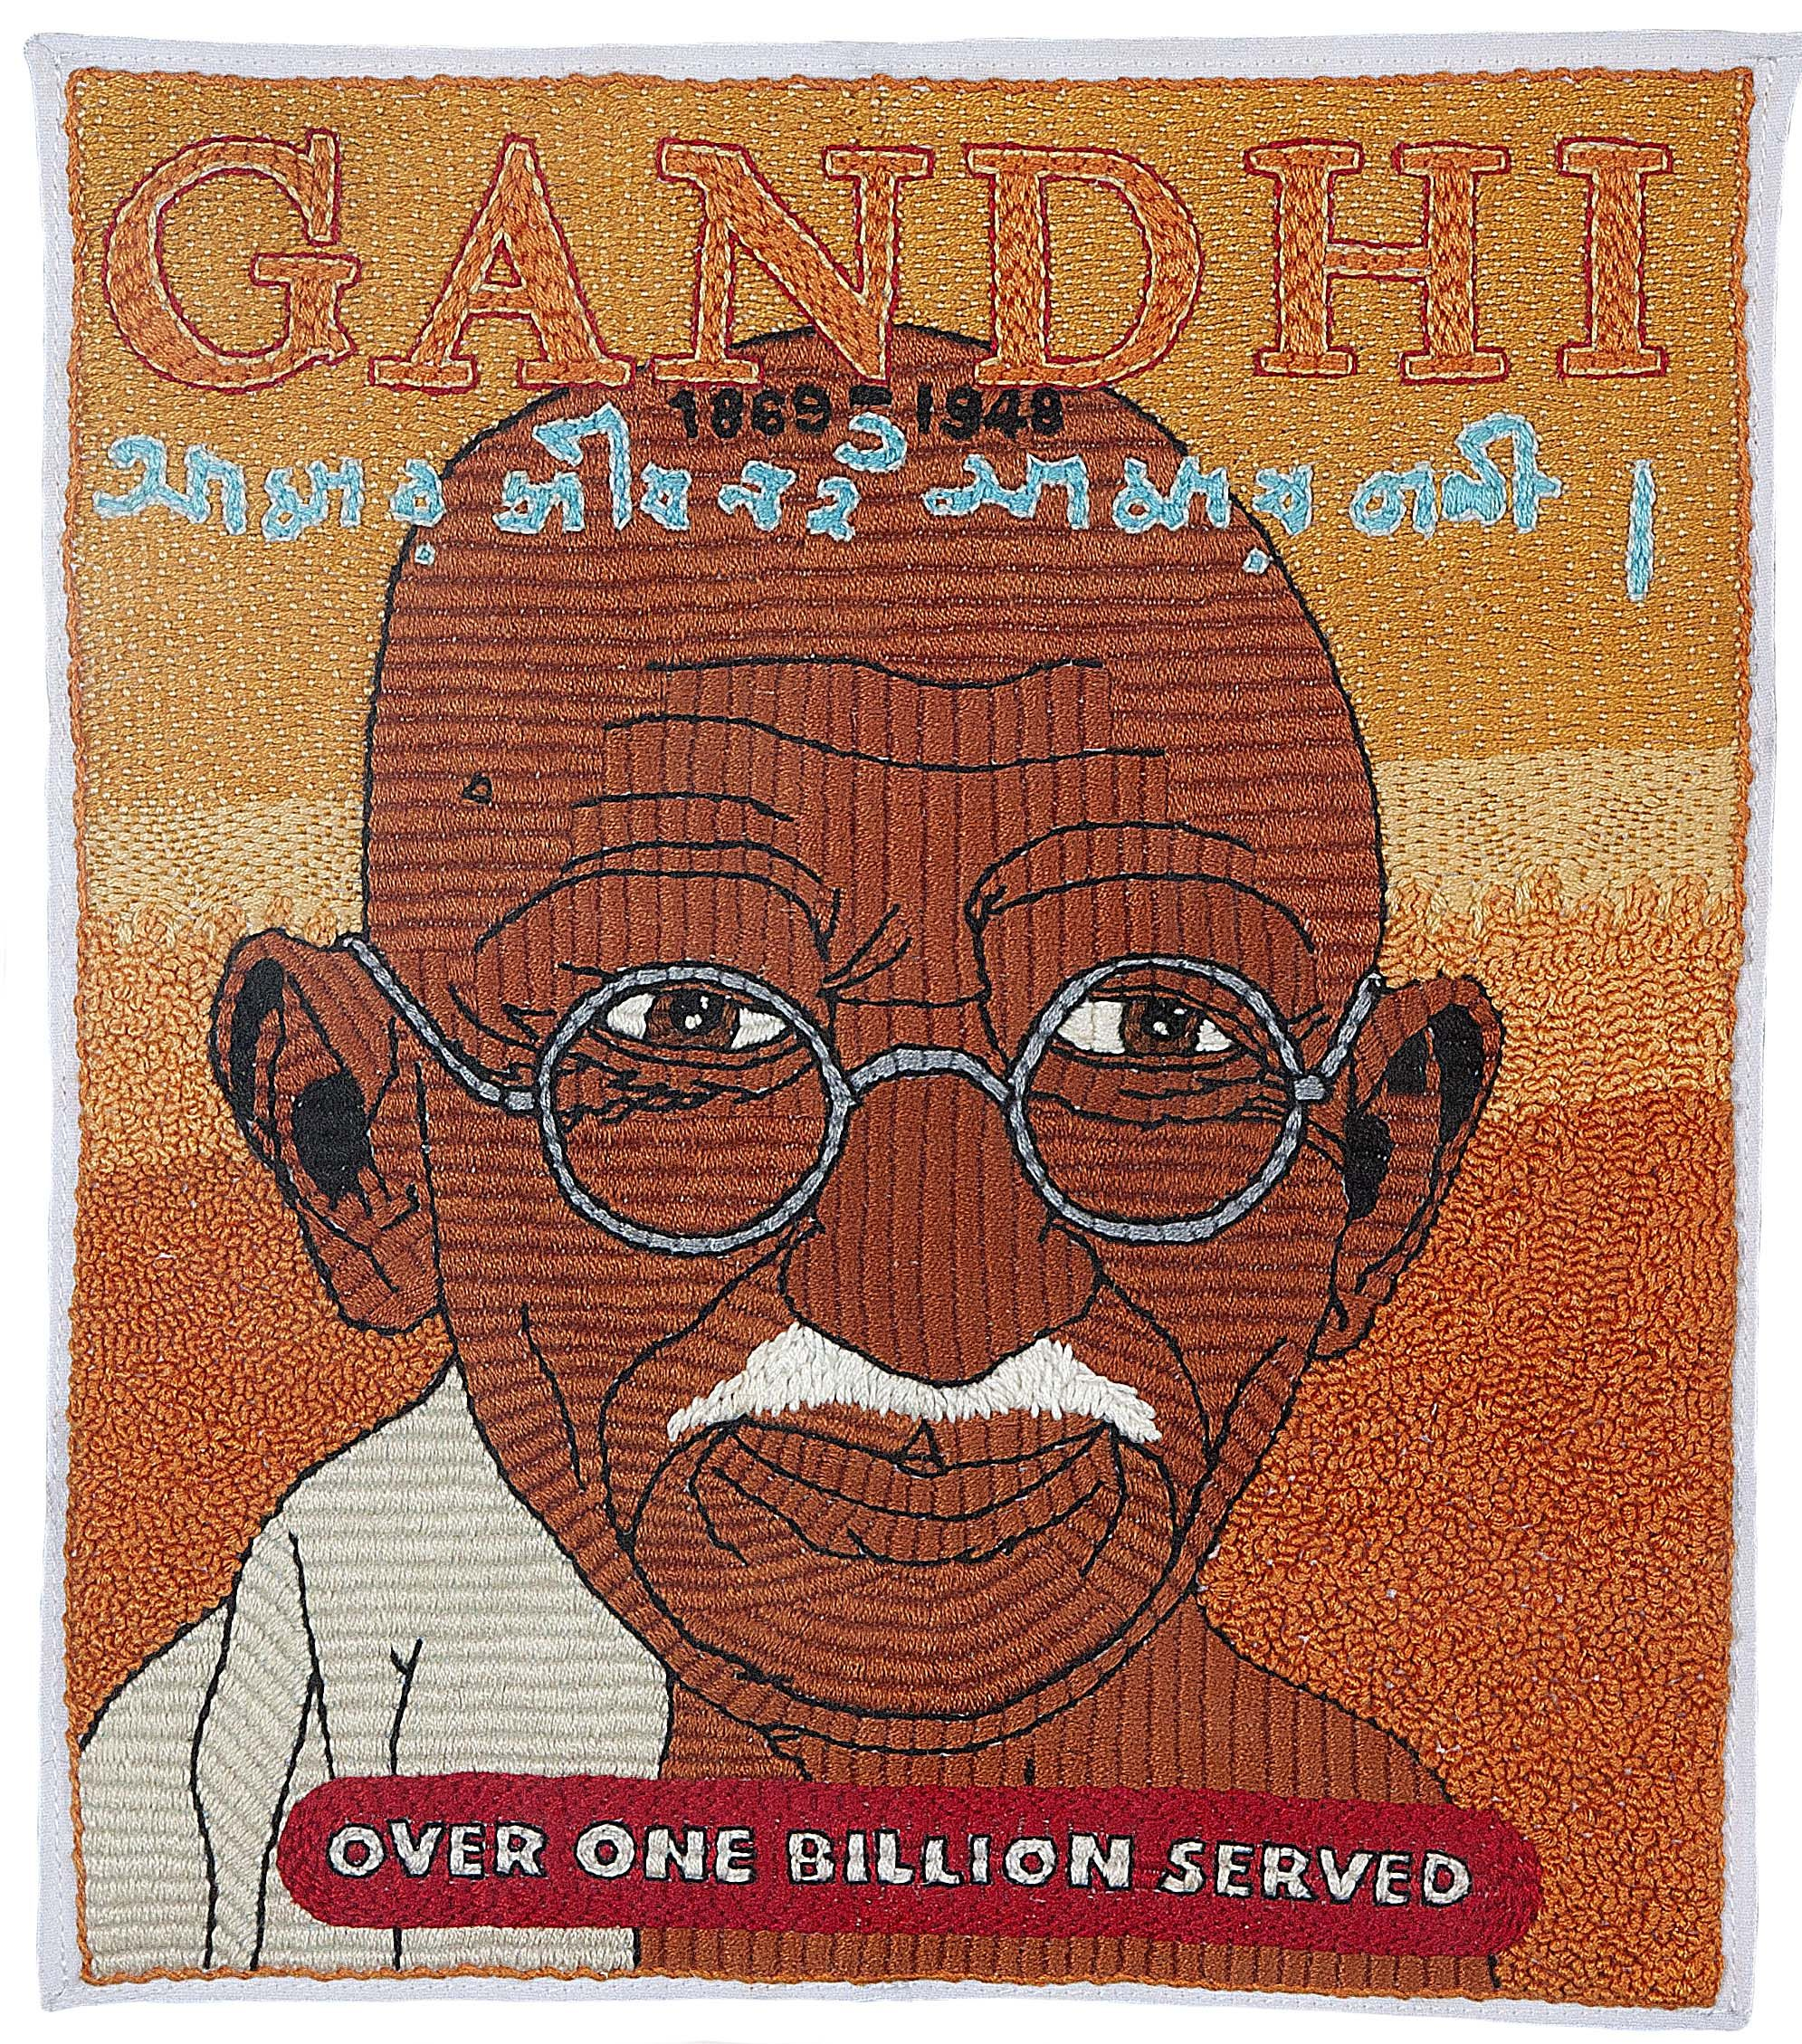 Gandhi/Embroidery/12 Inches x 14 Inches/2002 michaelaaronmcallister.com